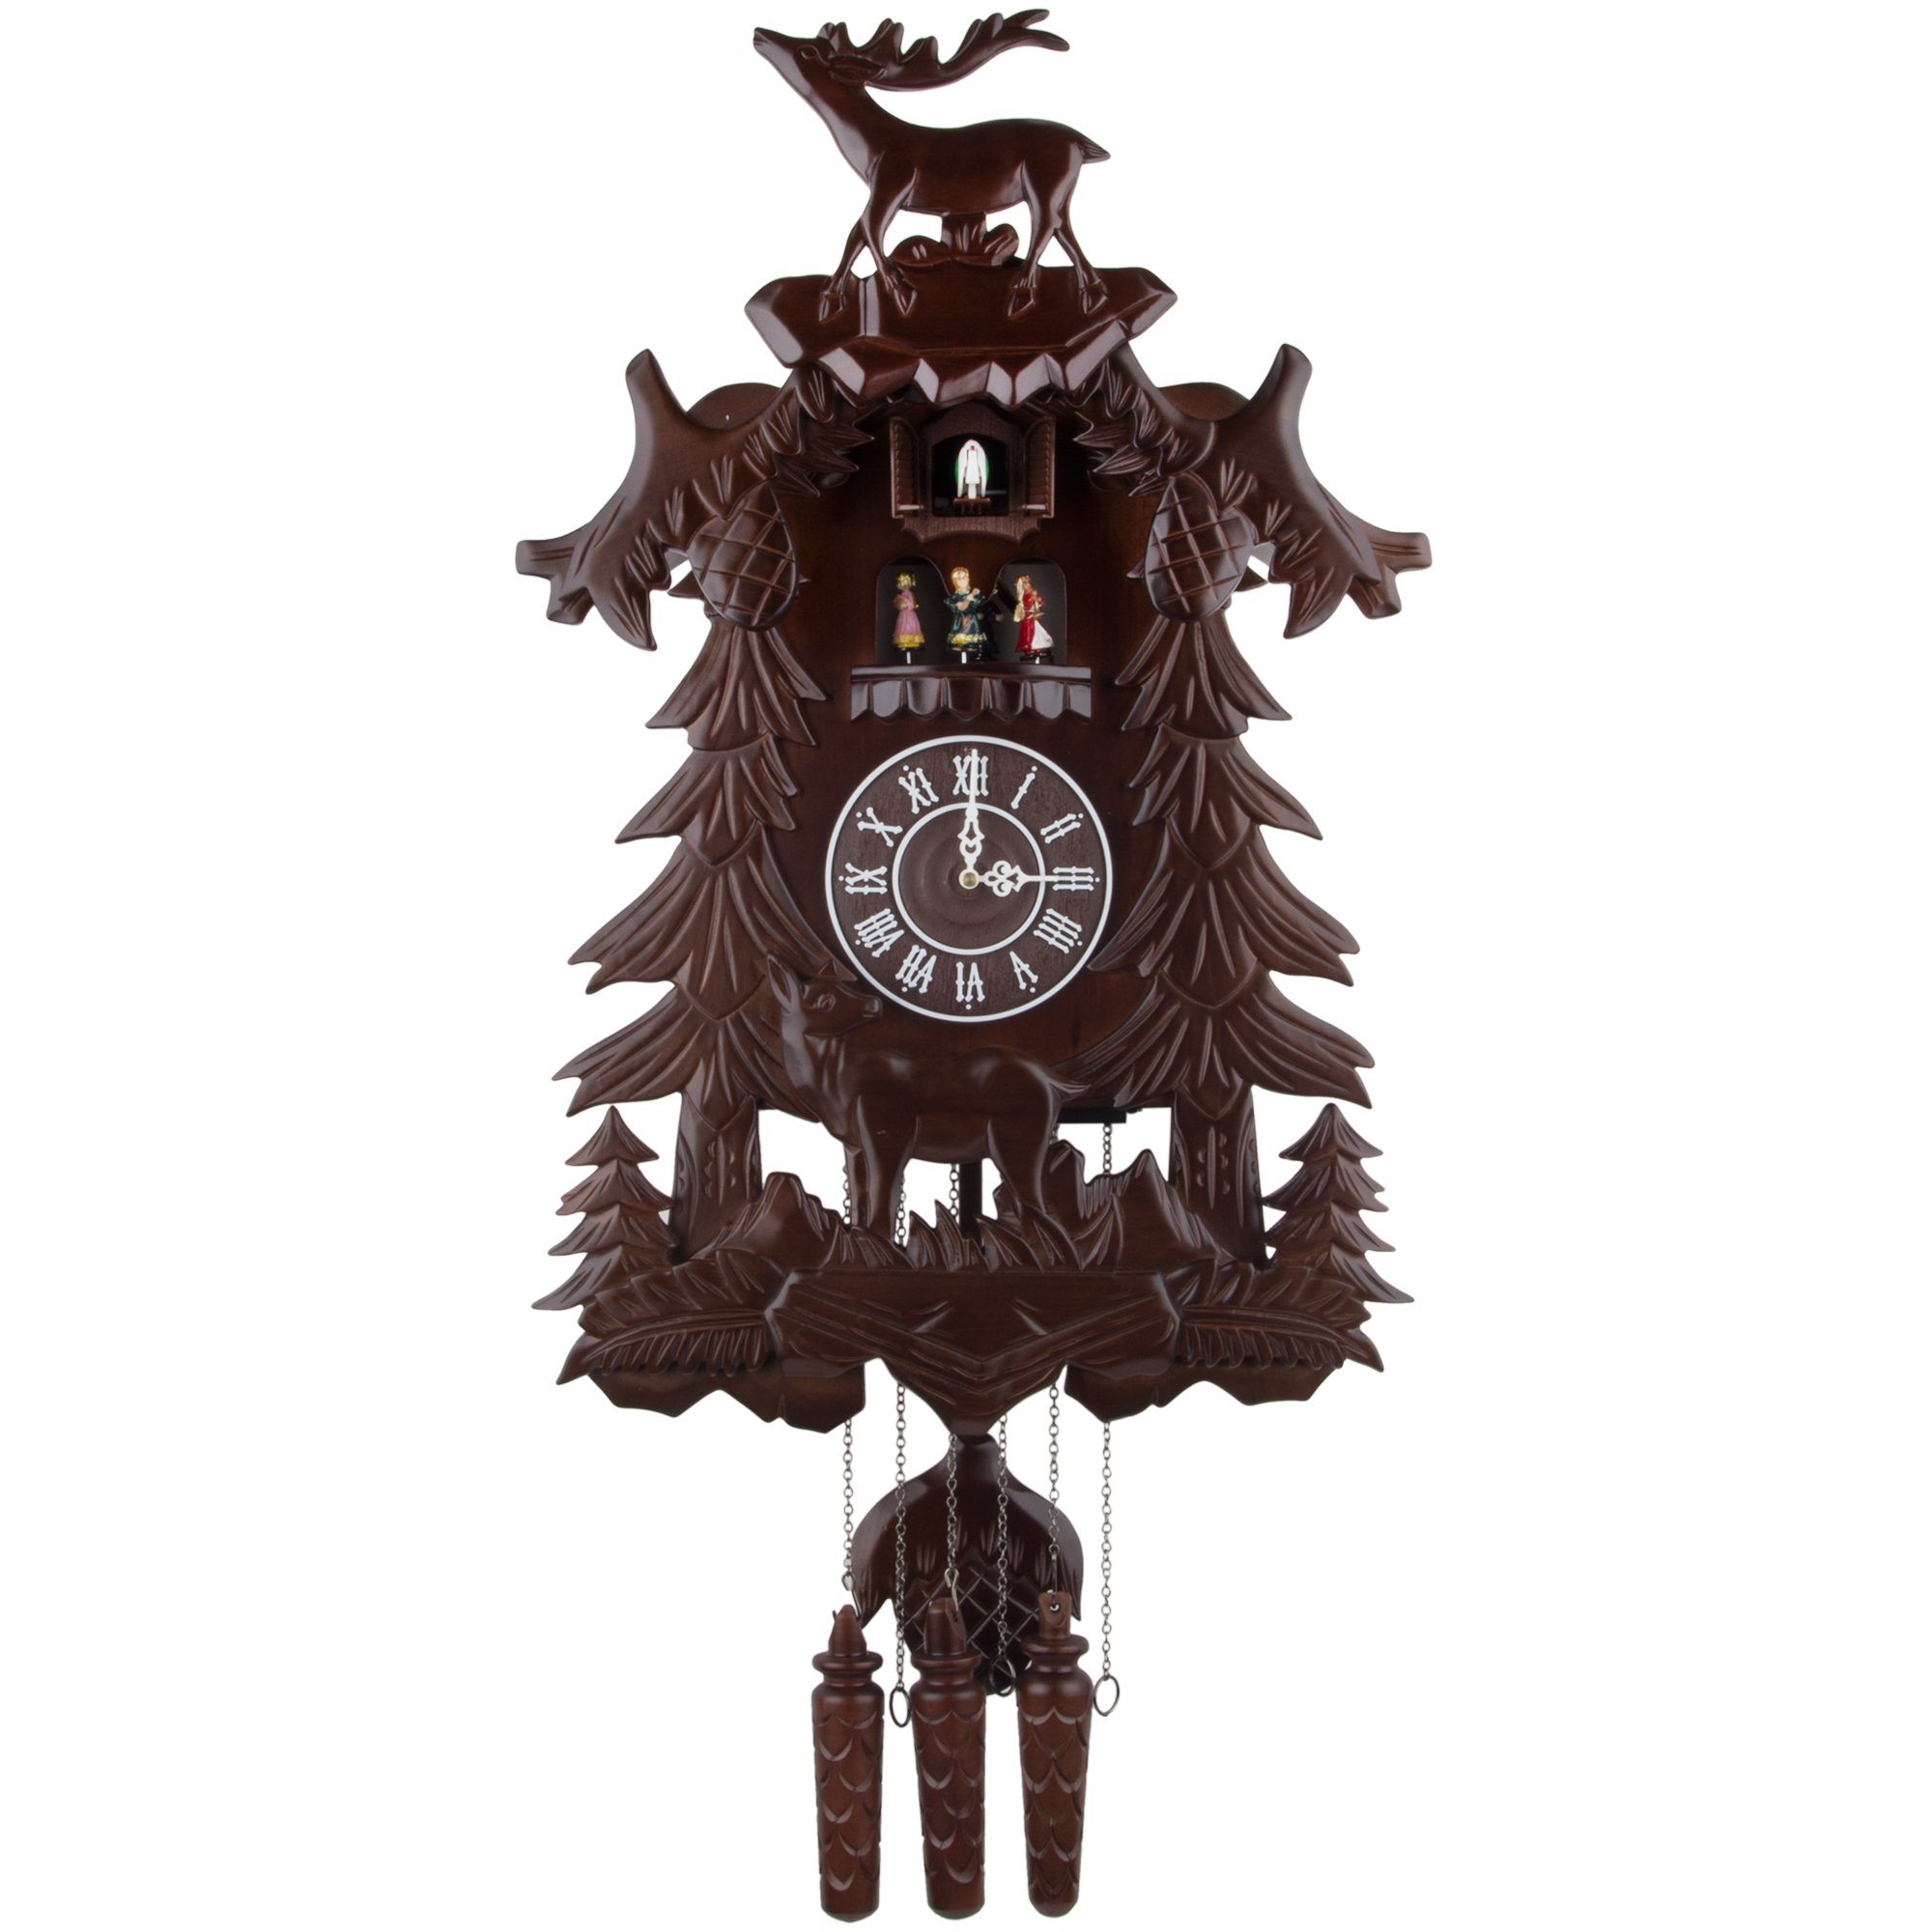 Kendal Vivid Large Deer Handcrafted Wood Cuckoo Clock with 4 Dancers Dancing with Music by Kendal